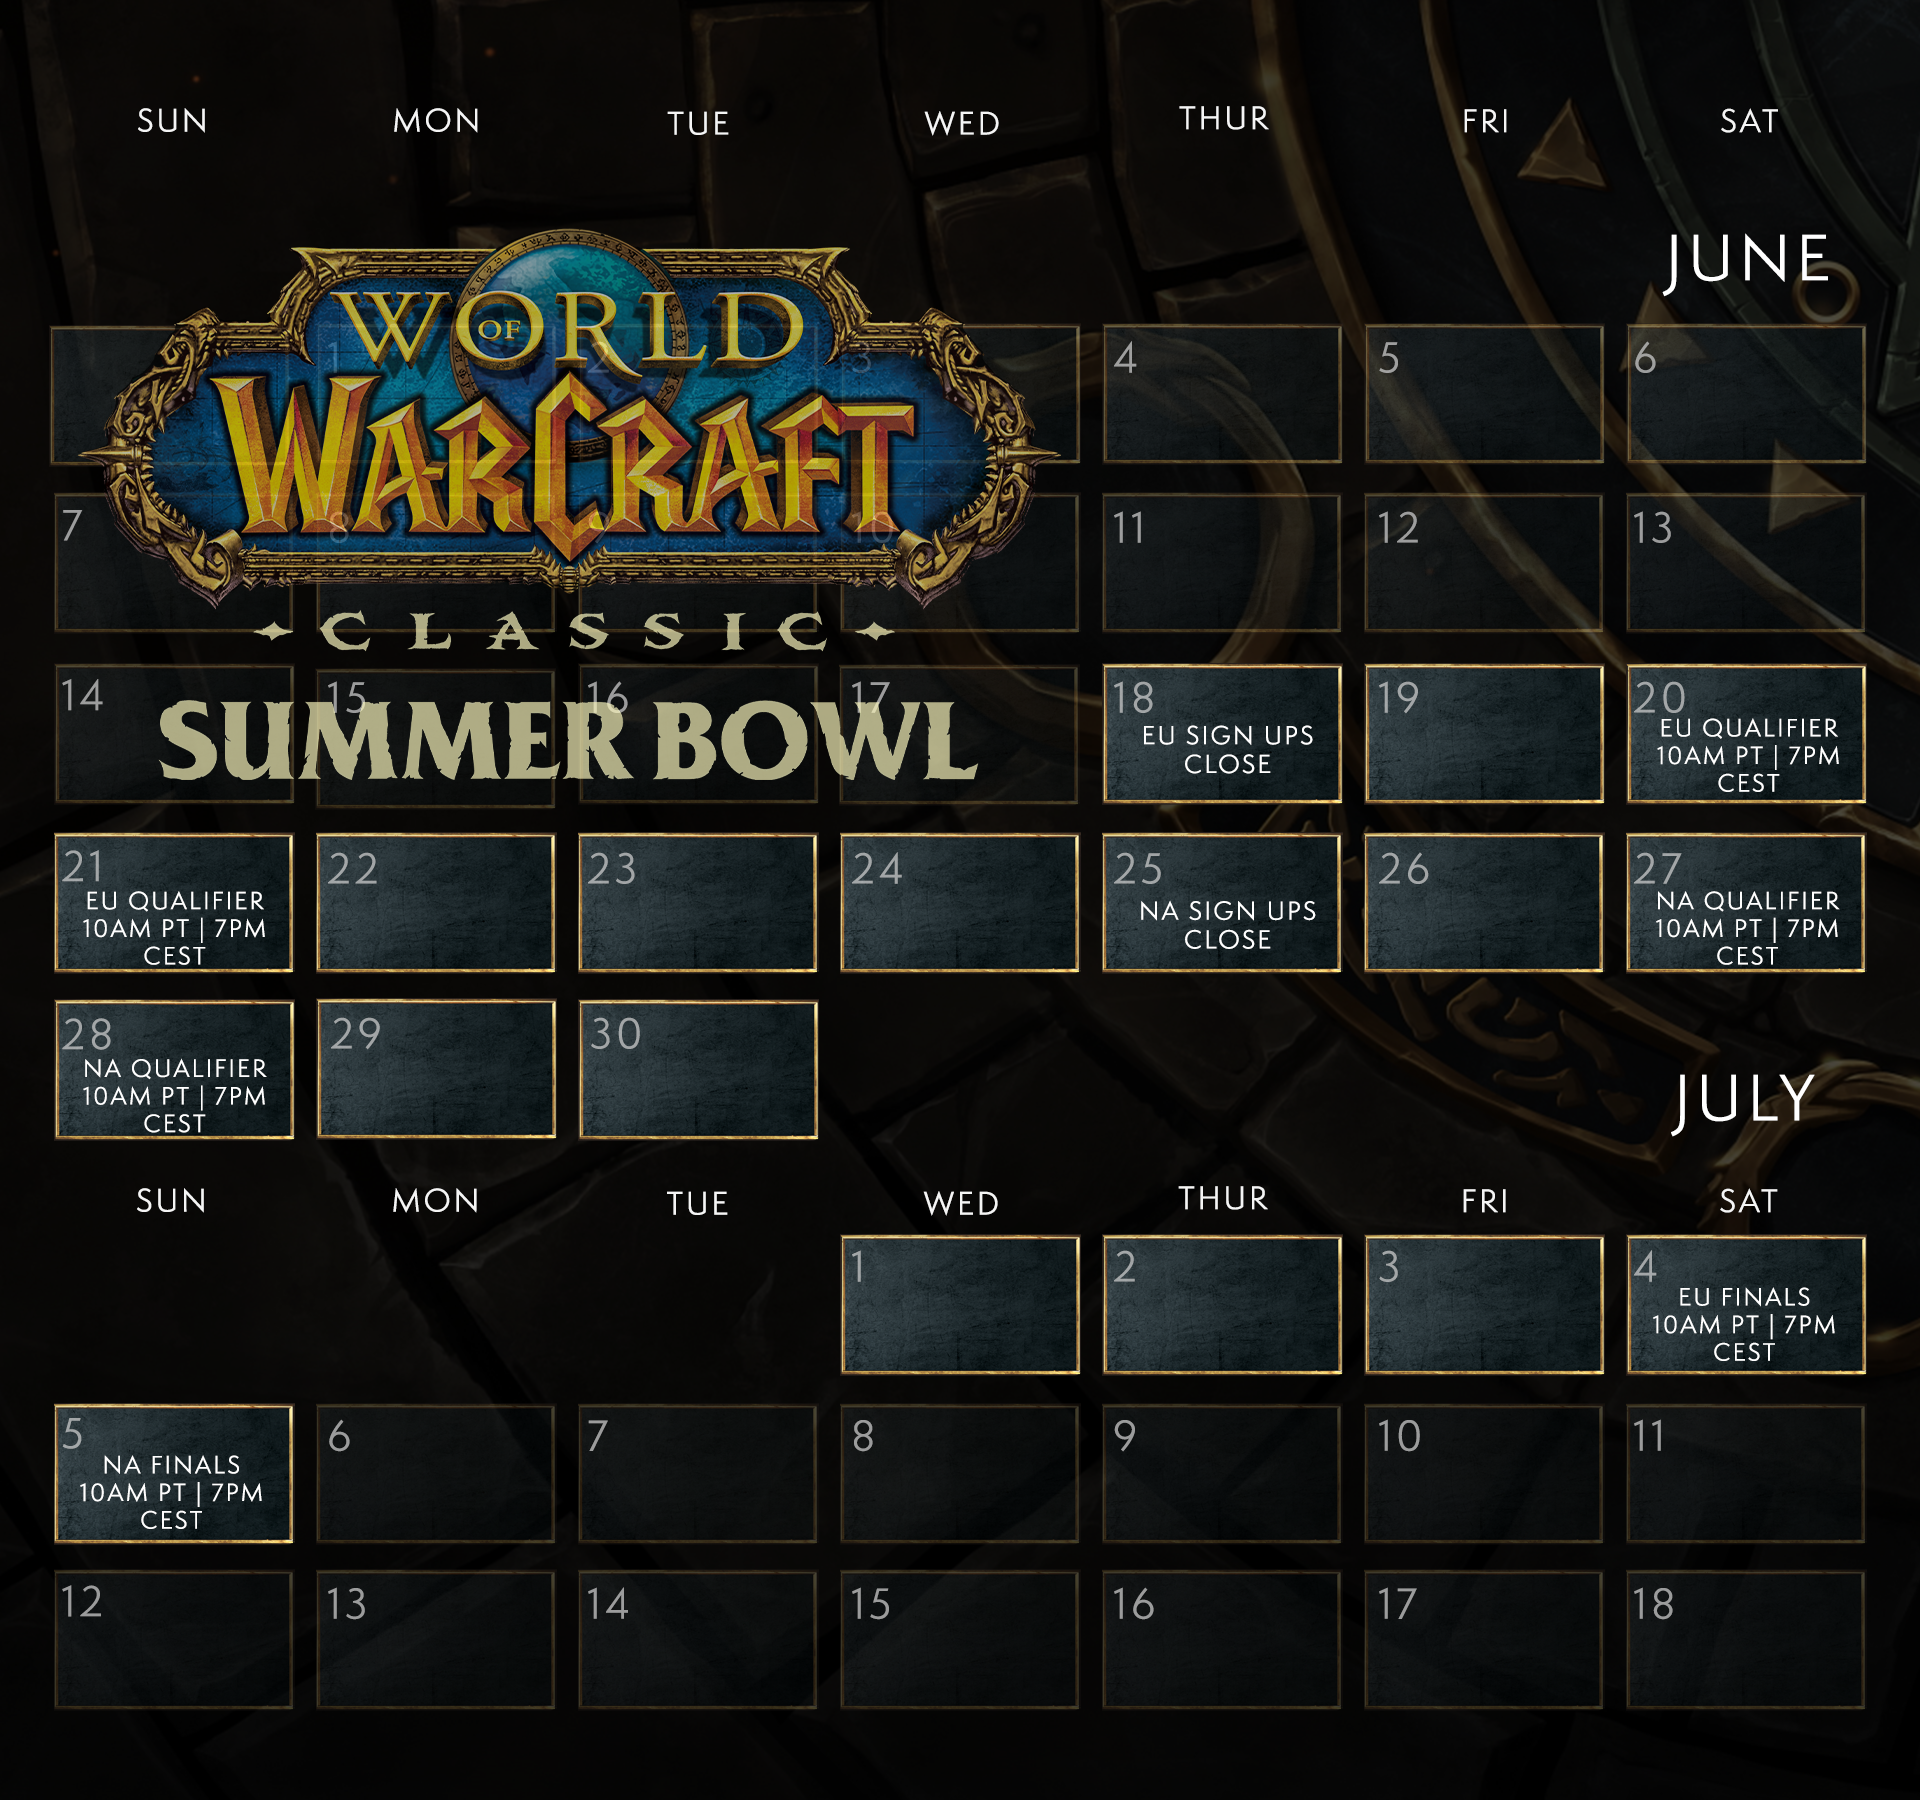 Summer Bowl Schedule.png